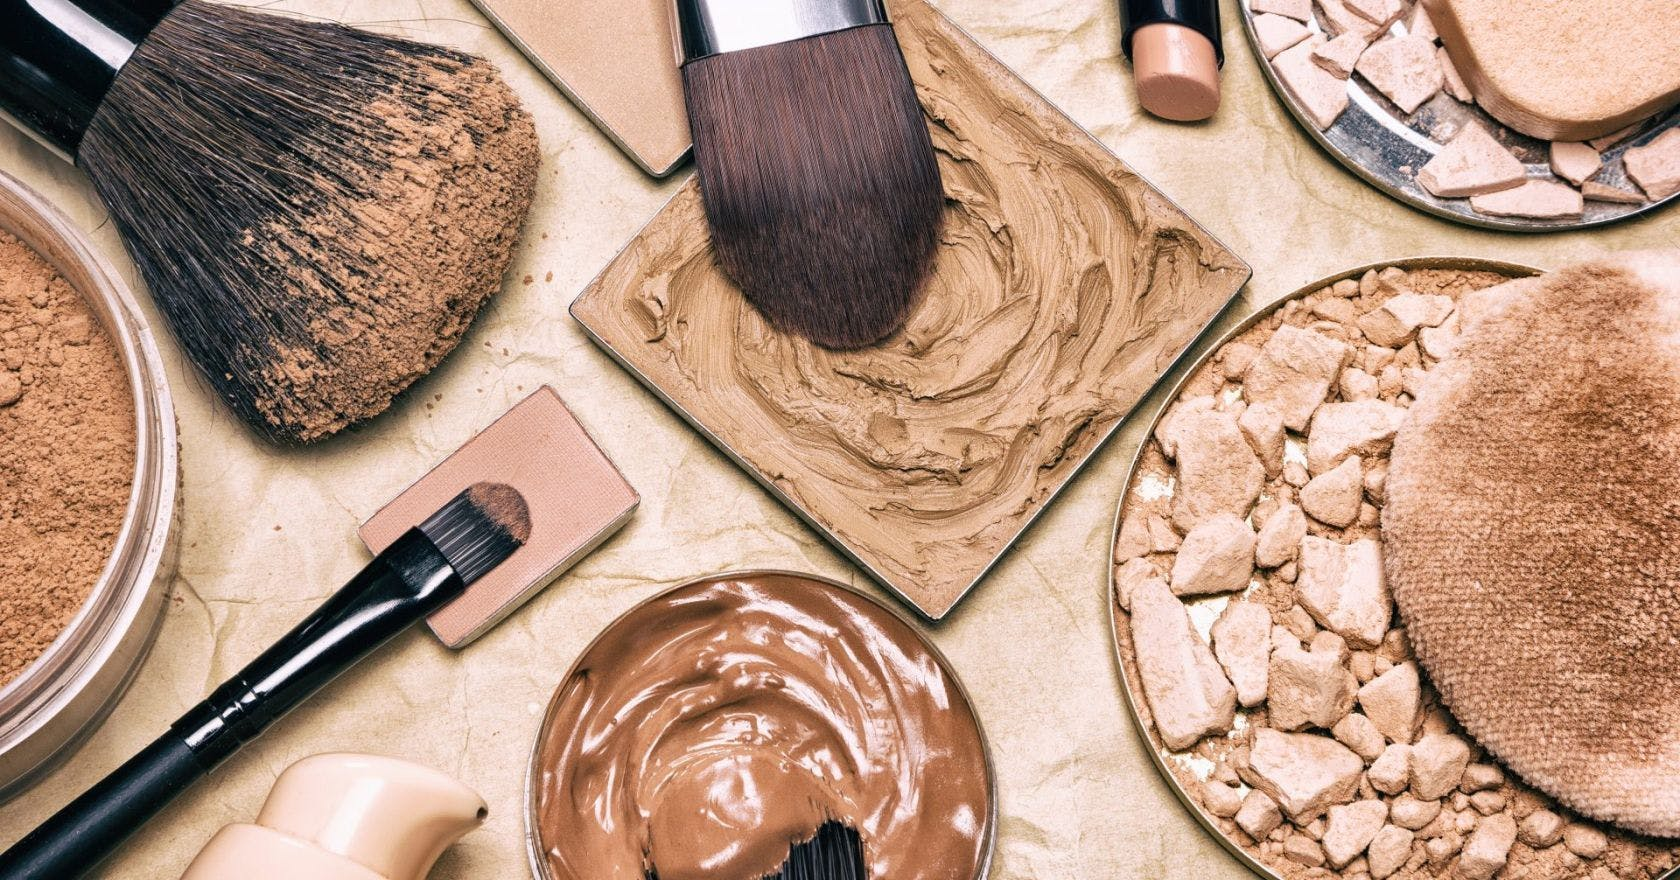 Everything you need to know about make-up expiration dates